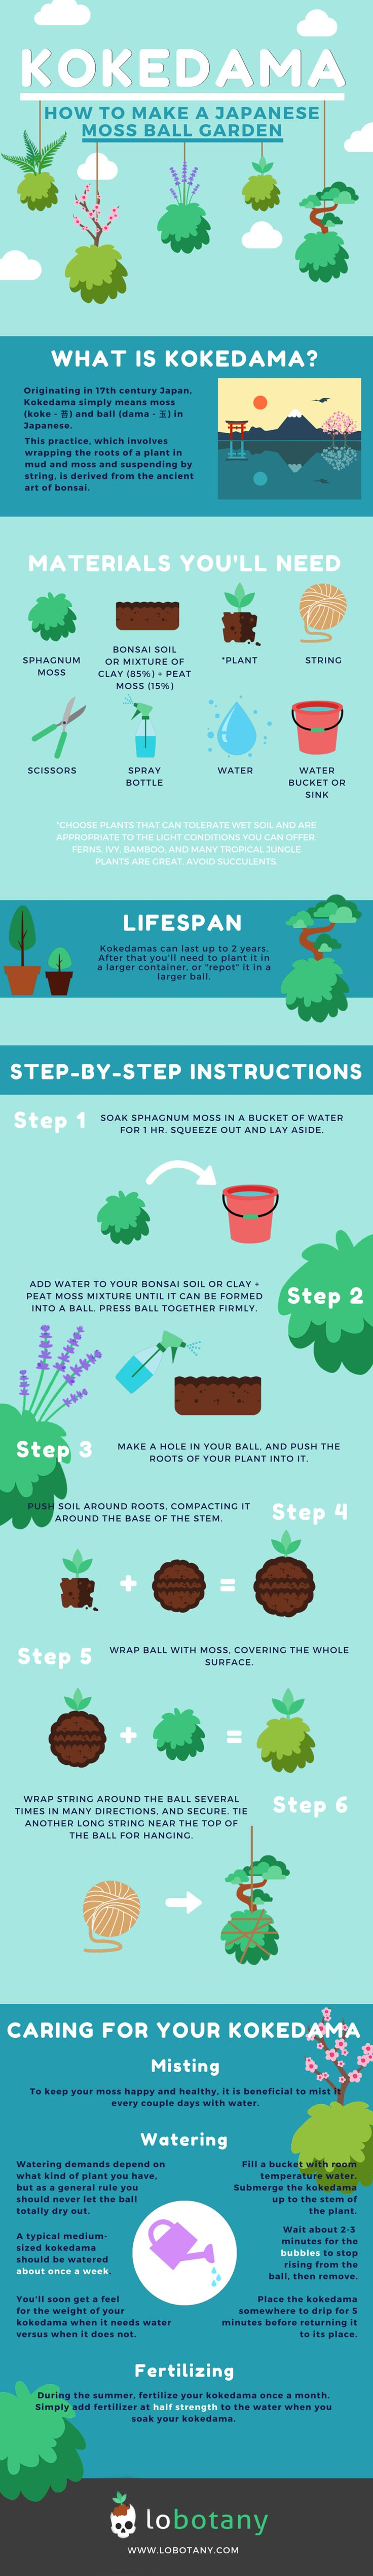 How to Make a Kokedama, or Japanese Moss Ball Garden. Easy DIY for an interesting indoor garden that doubles as an art piece! Derived from the ancient art of bonsai.